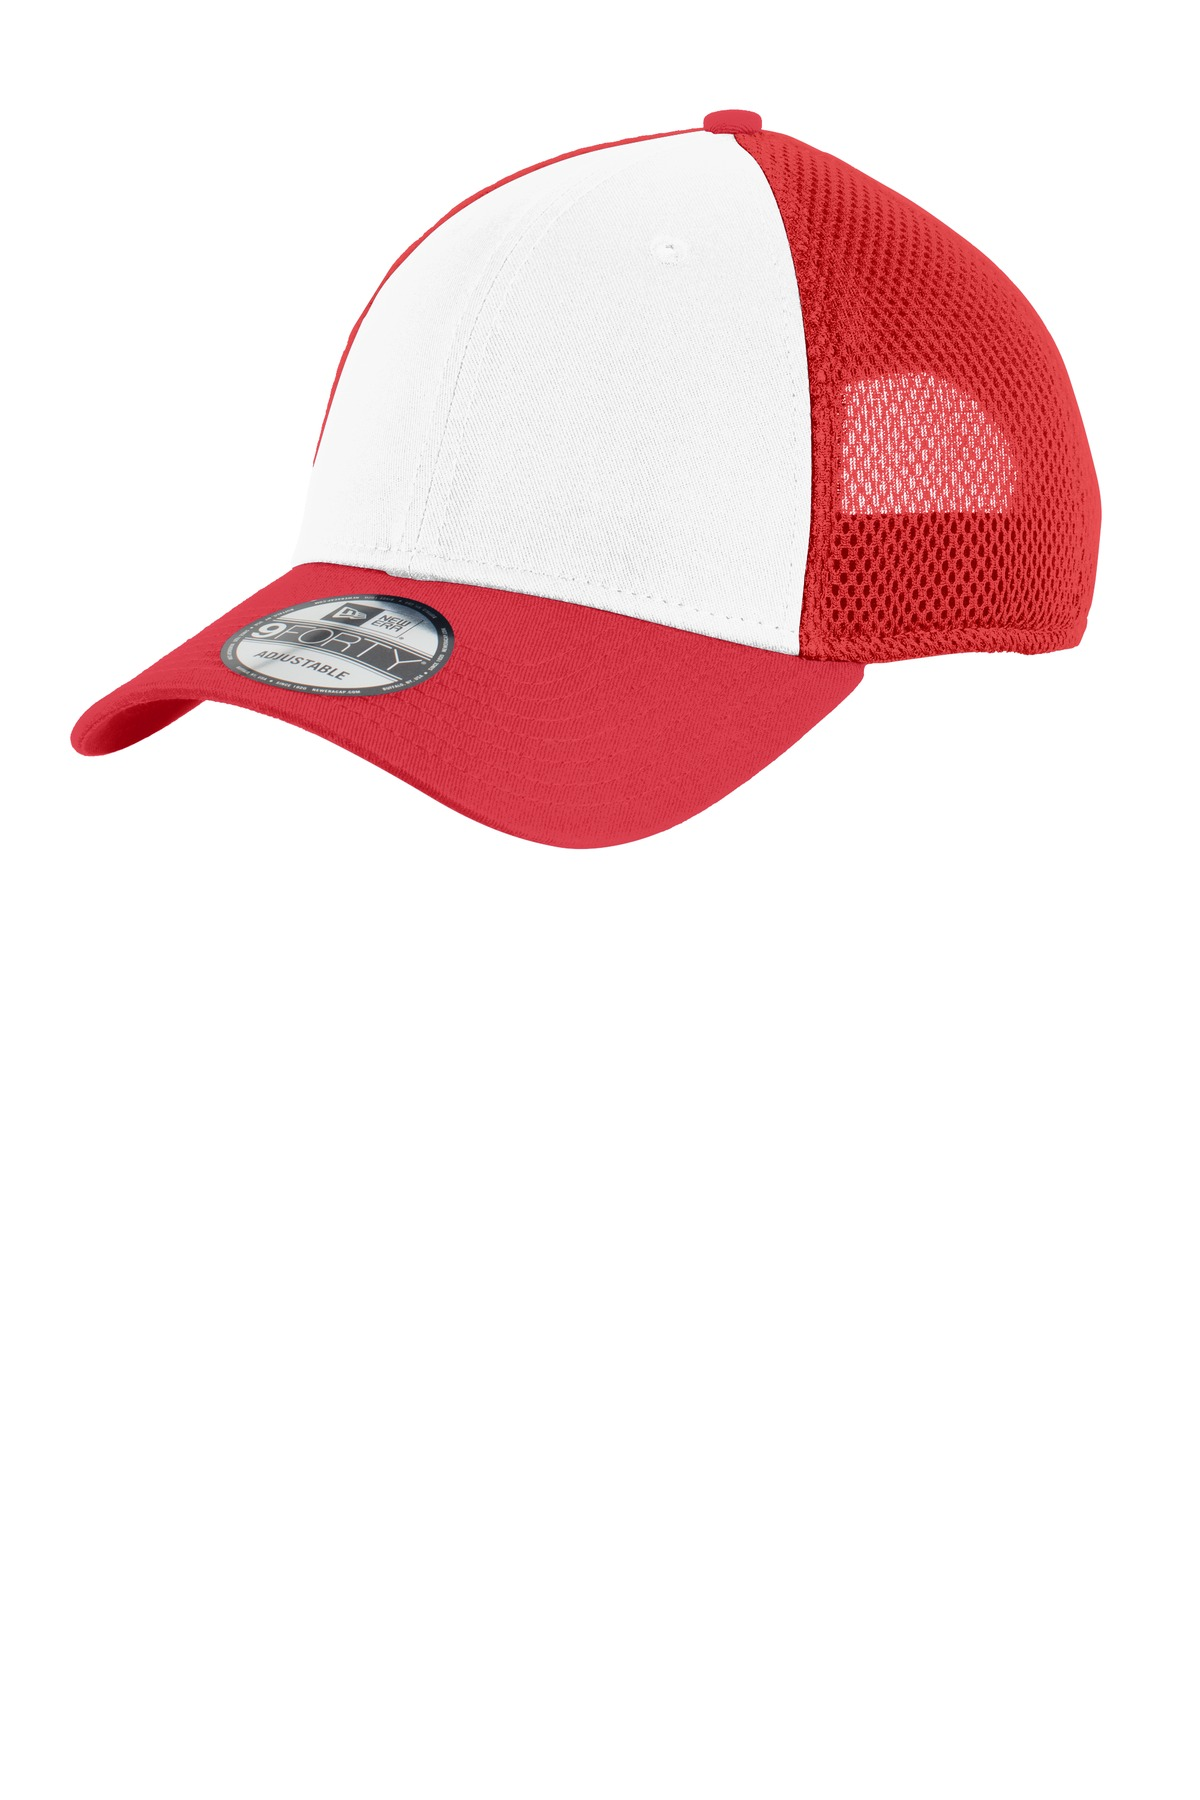 New Era ®  Snapback Contrast Front Mesh Cap. NE204 - White/ Scarlet Red